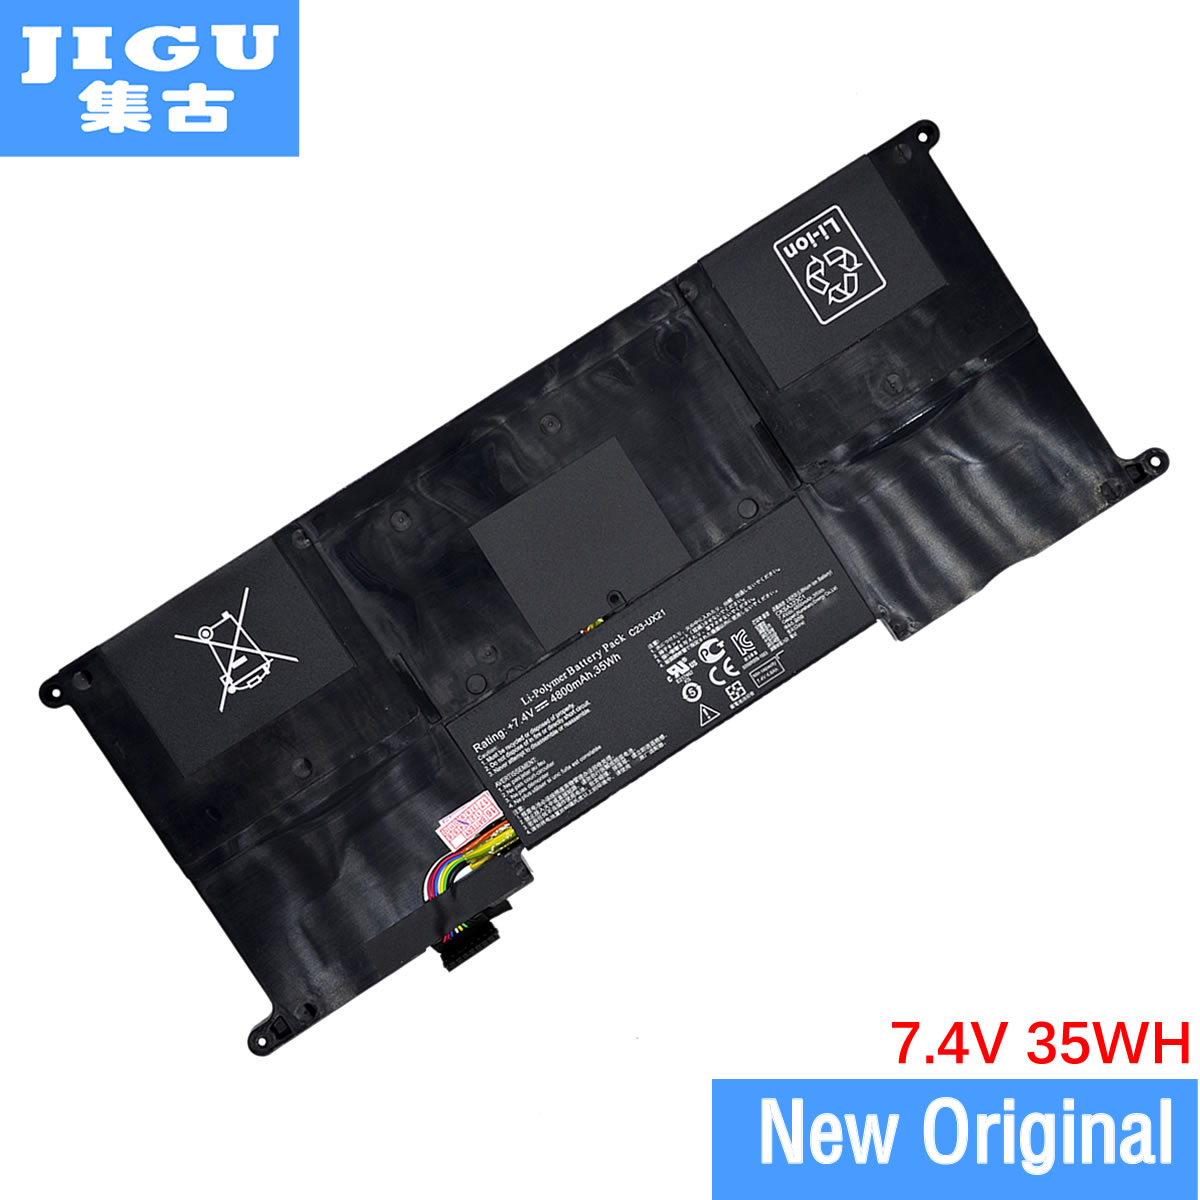 JIGU C23-UX21 C22-UX21 Original laptop Battery For Asus Ultrabook for ZENBOOK UX21 UX21A UX21E 7.4V 4800MAH 35WH free shipping new 50wh genuine c32n1305 battery for asus zenbook infinity ux301la ultrabook laptop